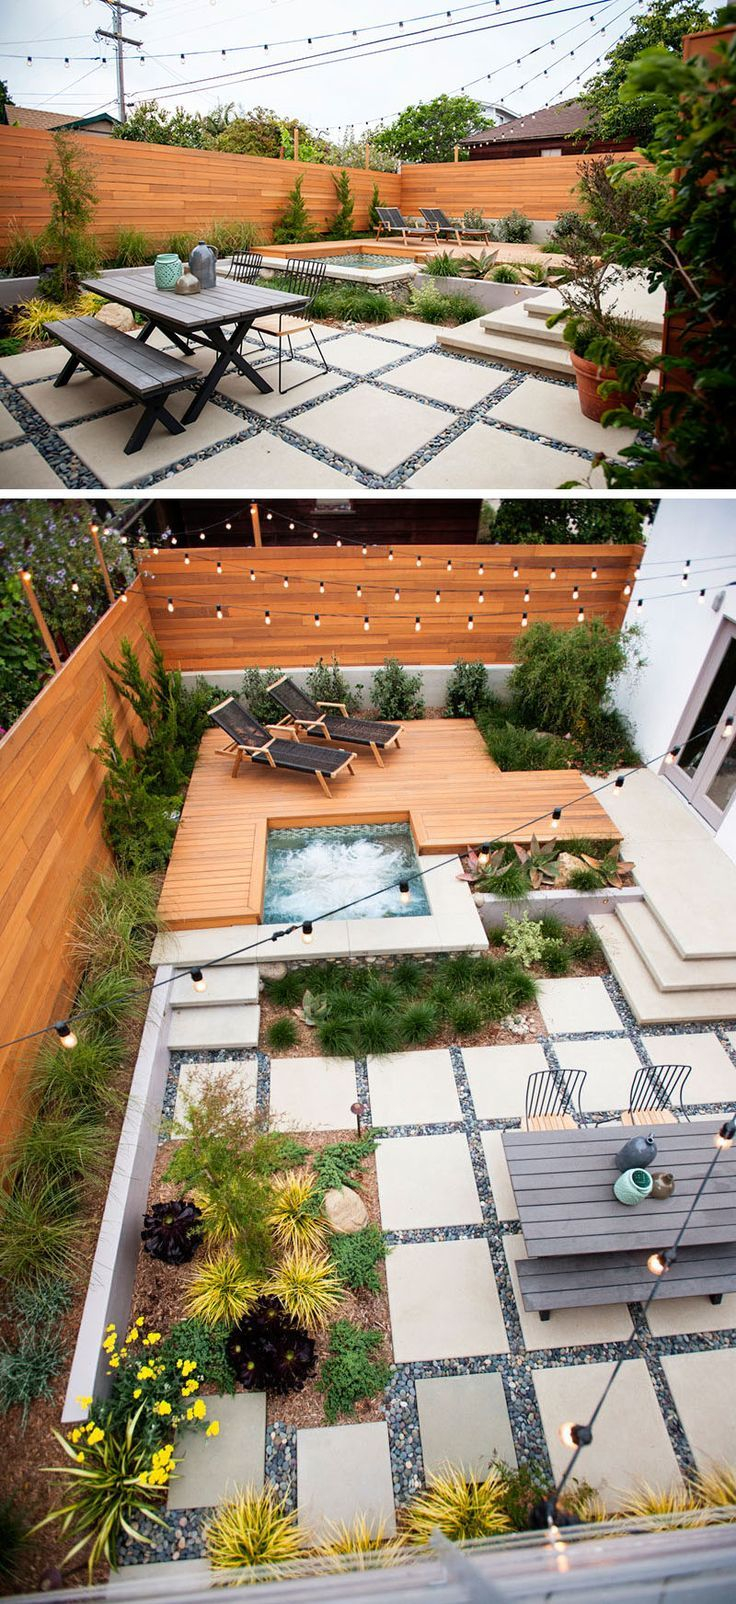 Landscaping Design Ideas 11 Backyards Designed For Entertaining regarding 13 Smart Tricks of How to Craft How To Design Backyard Landscaping